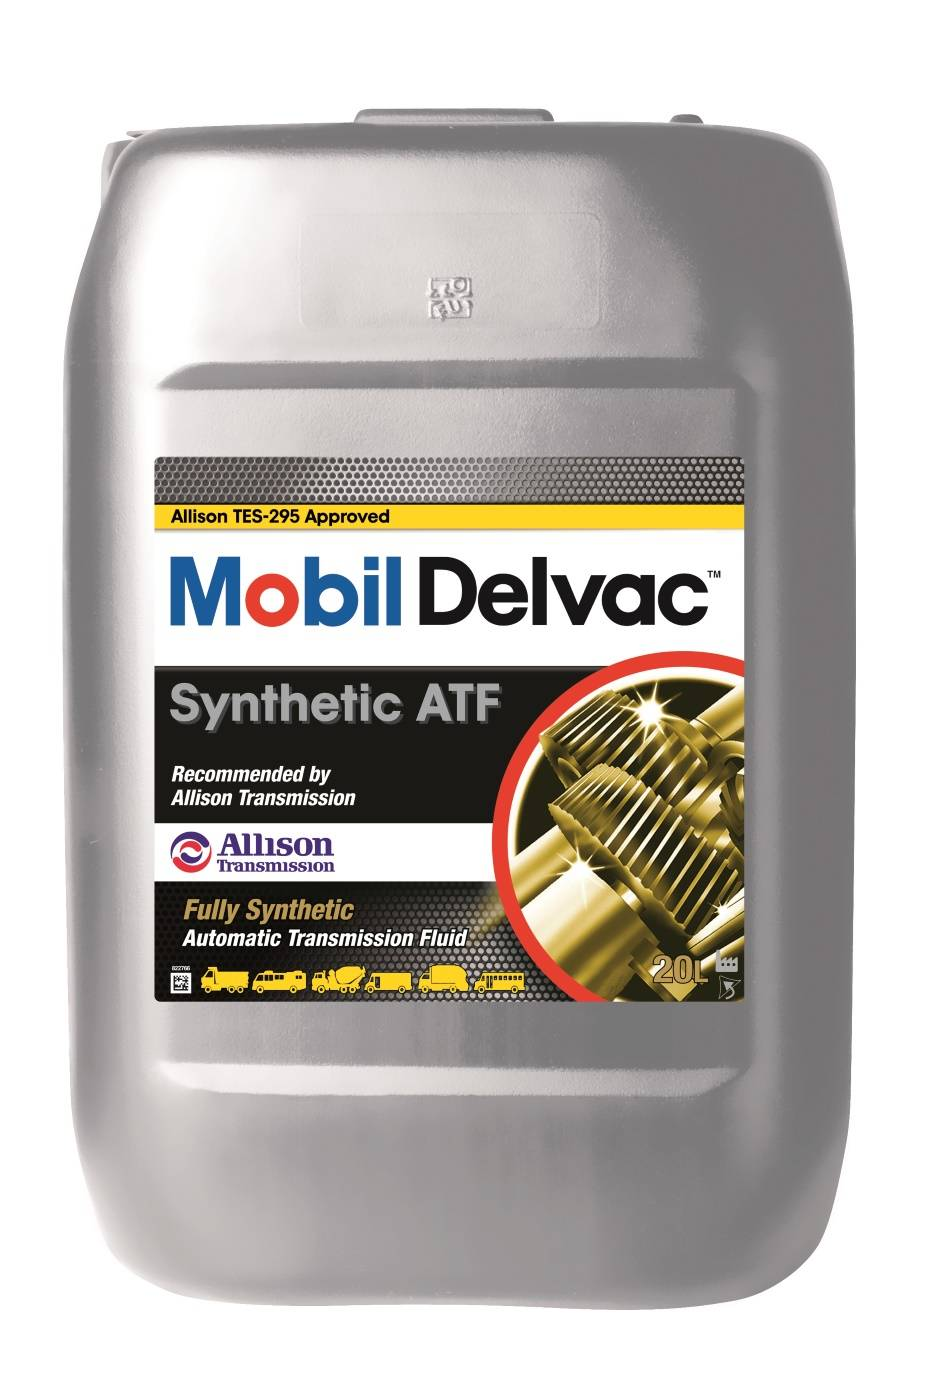 Mobil Jet Grease Hydraulic Oil Plastic Grease Mobil Delvac Engine Oil Aviation Oil Industry Oil